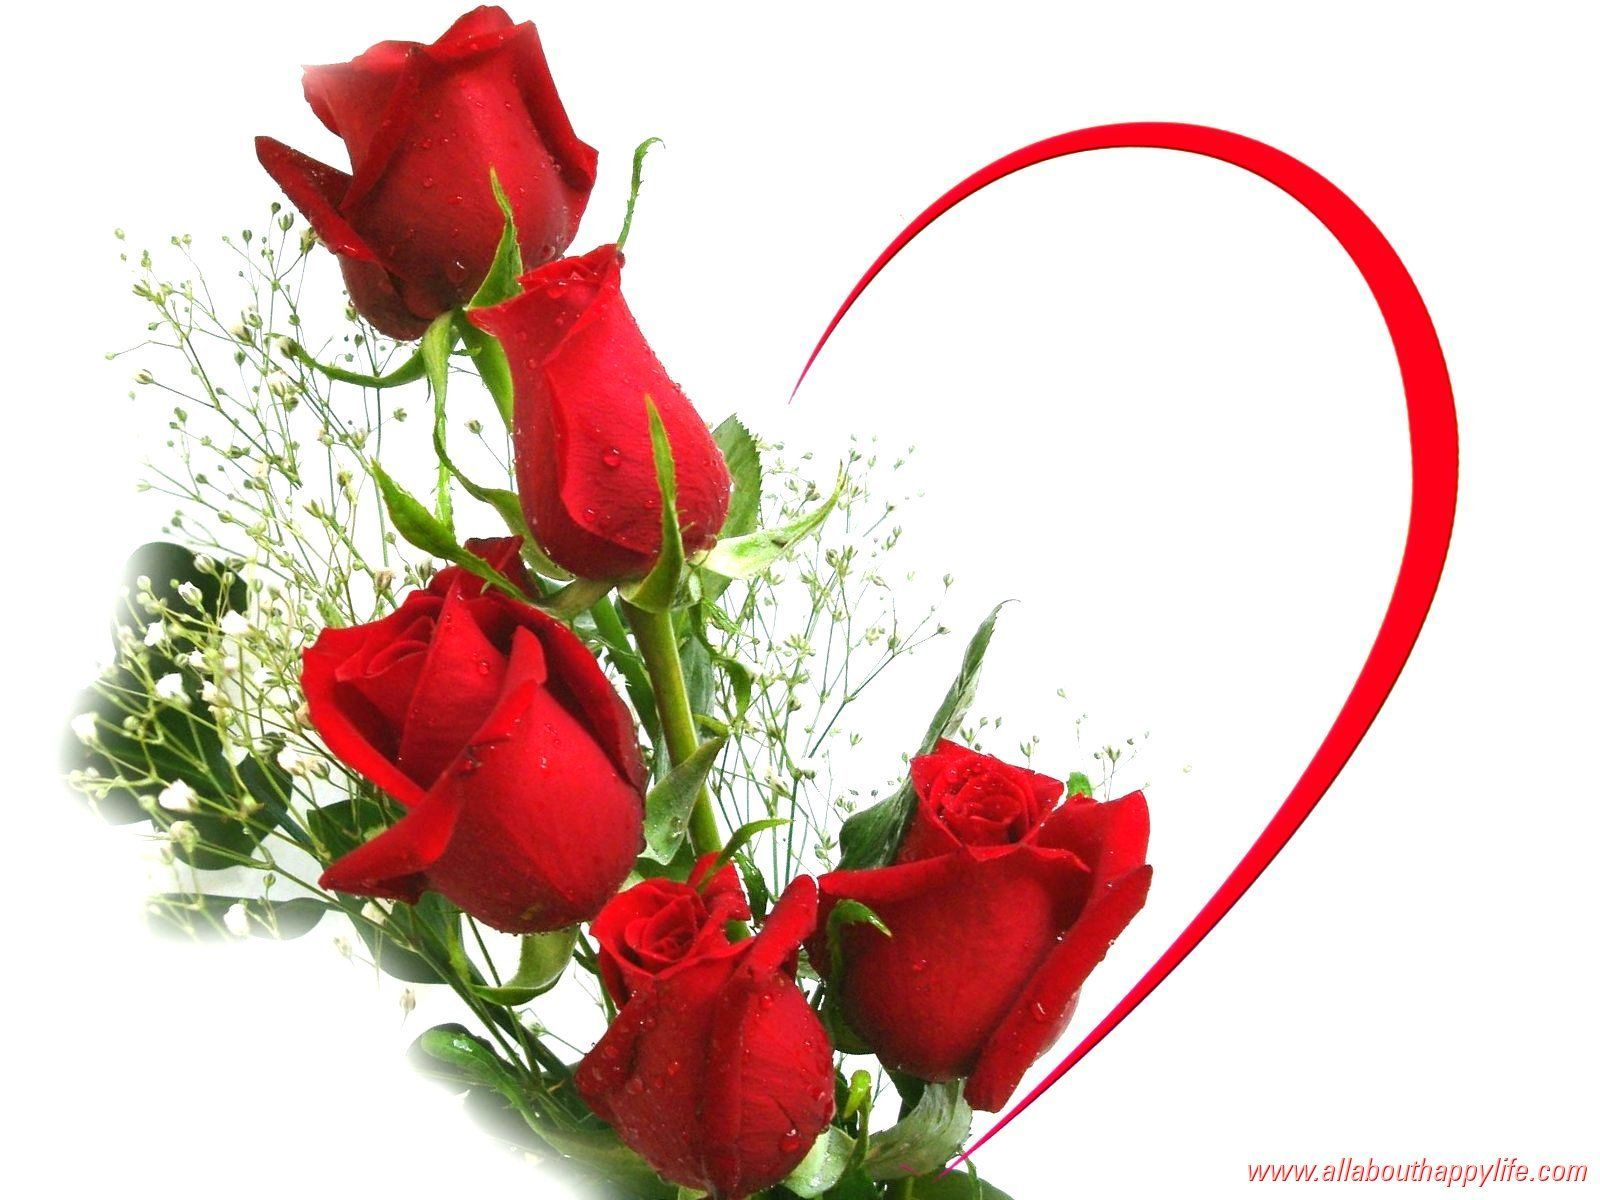 Red Rose Live Wallpaper Android Apps On Google Play 1600 1200 Red Roses Pics Wallpapers 39 Wallpapers Love Rose Flower Red Roses Wallpaper Love Rose Images